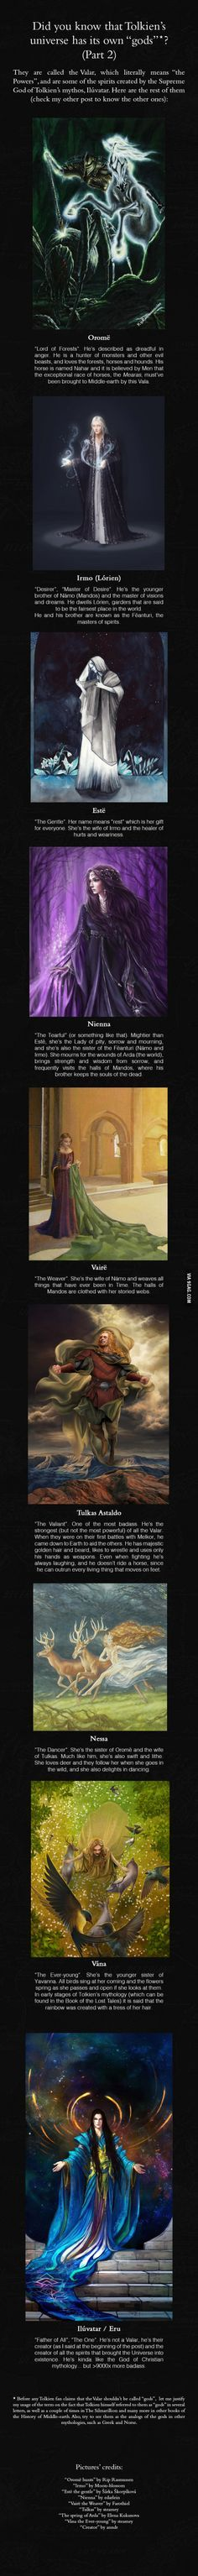 The Valar, part 2 - J.R.R. Tolkien's Mythology